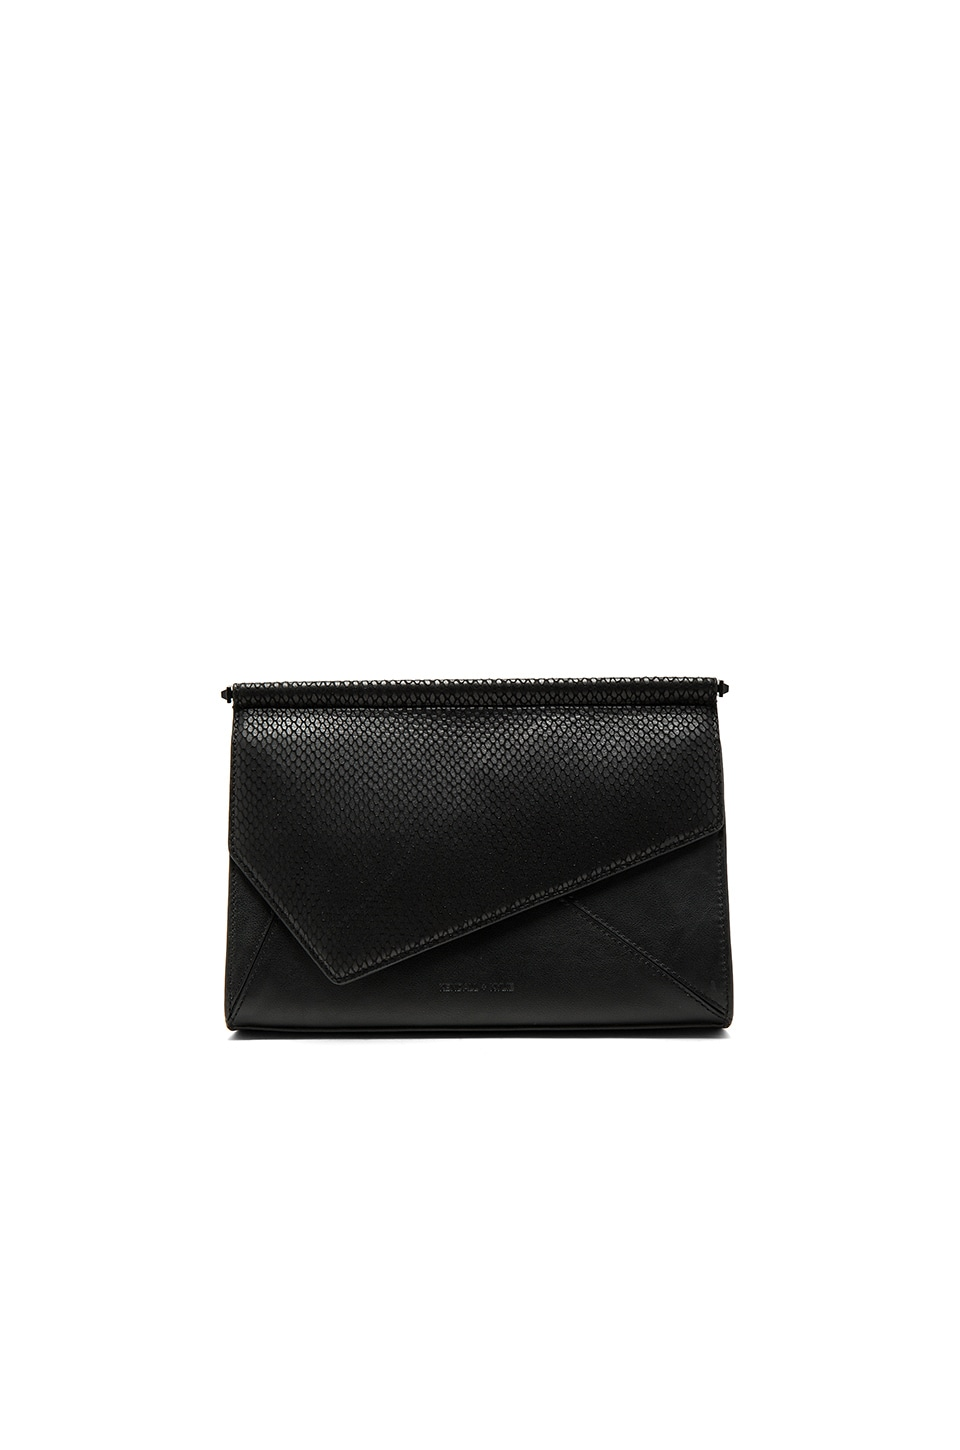 Ginza Clutch by Kendall + Kylie